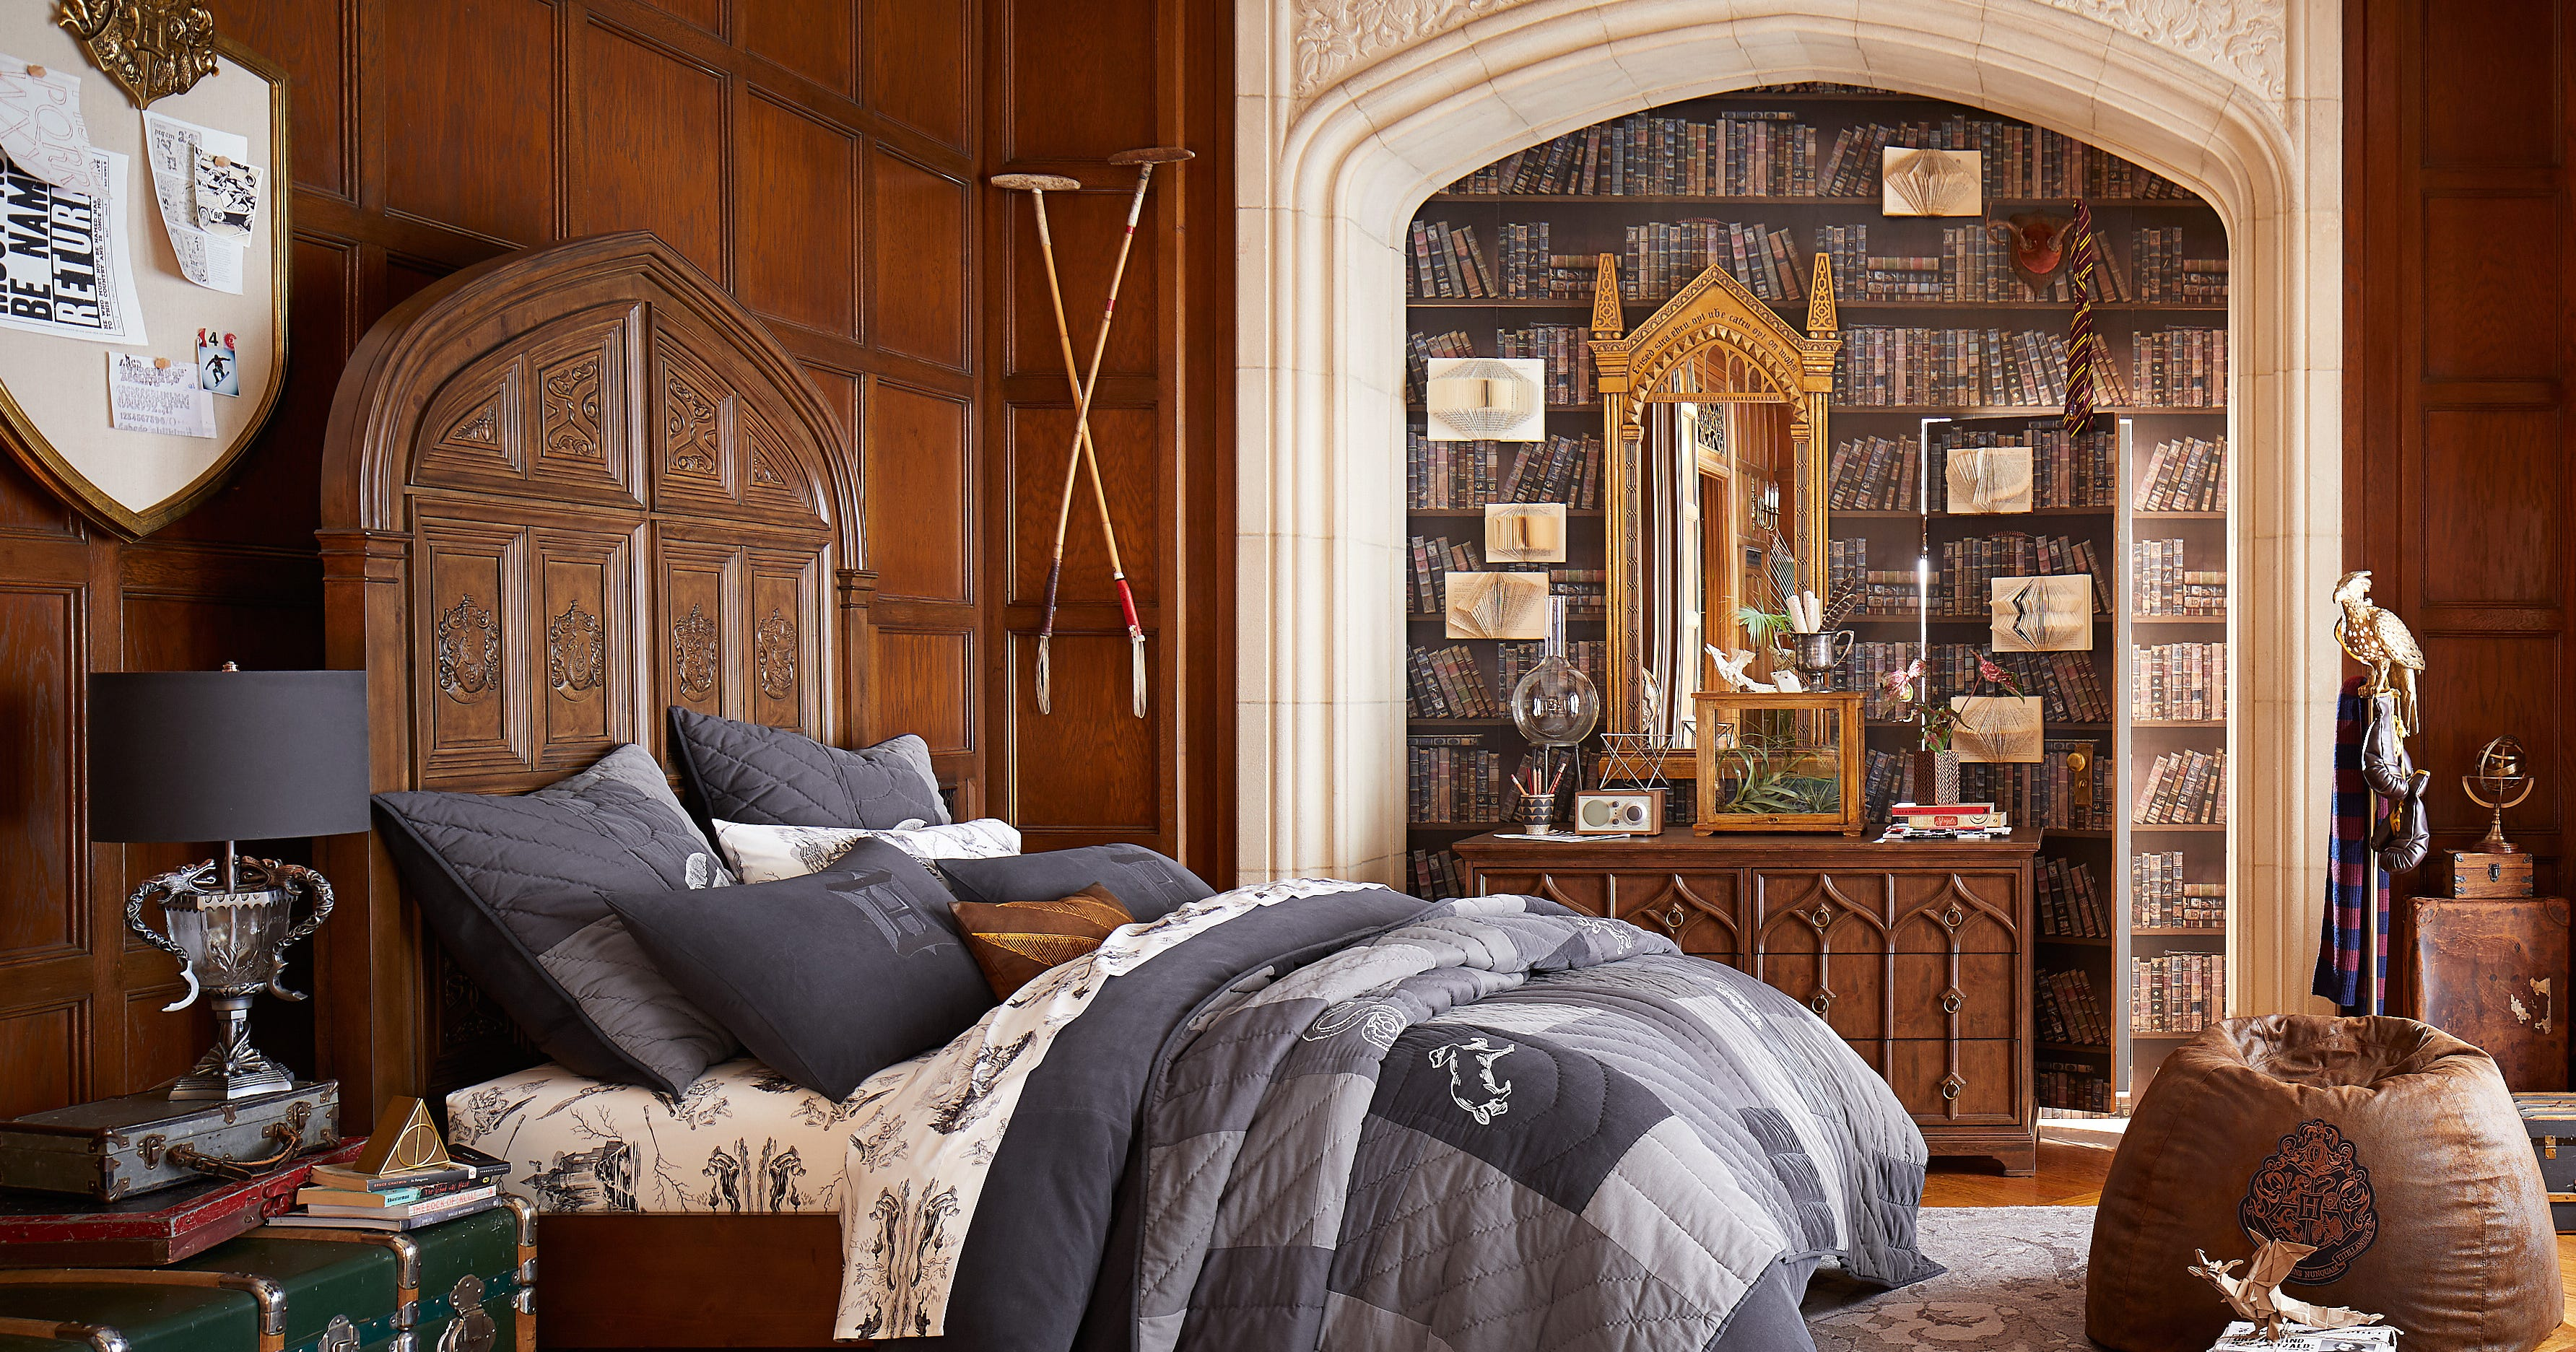 Pottery Barn Launches Harry Potter Decor For All Ages